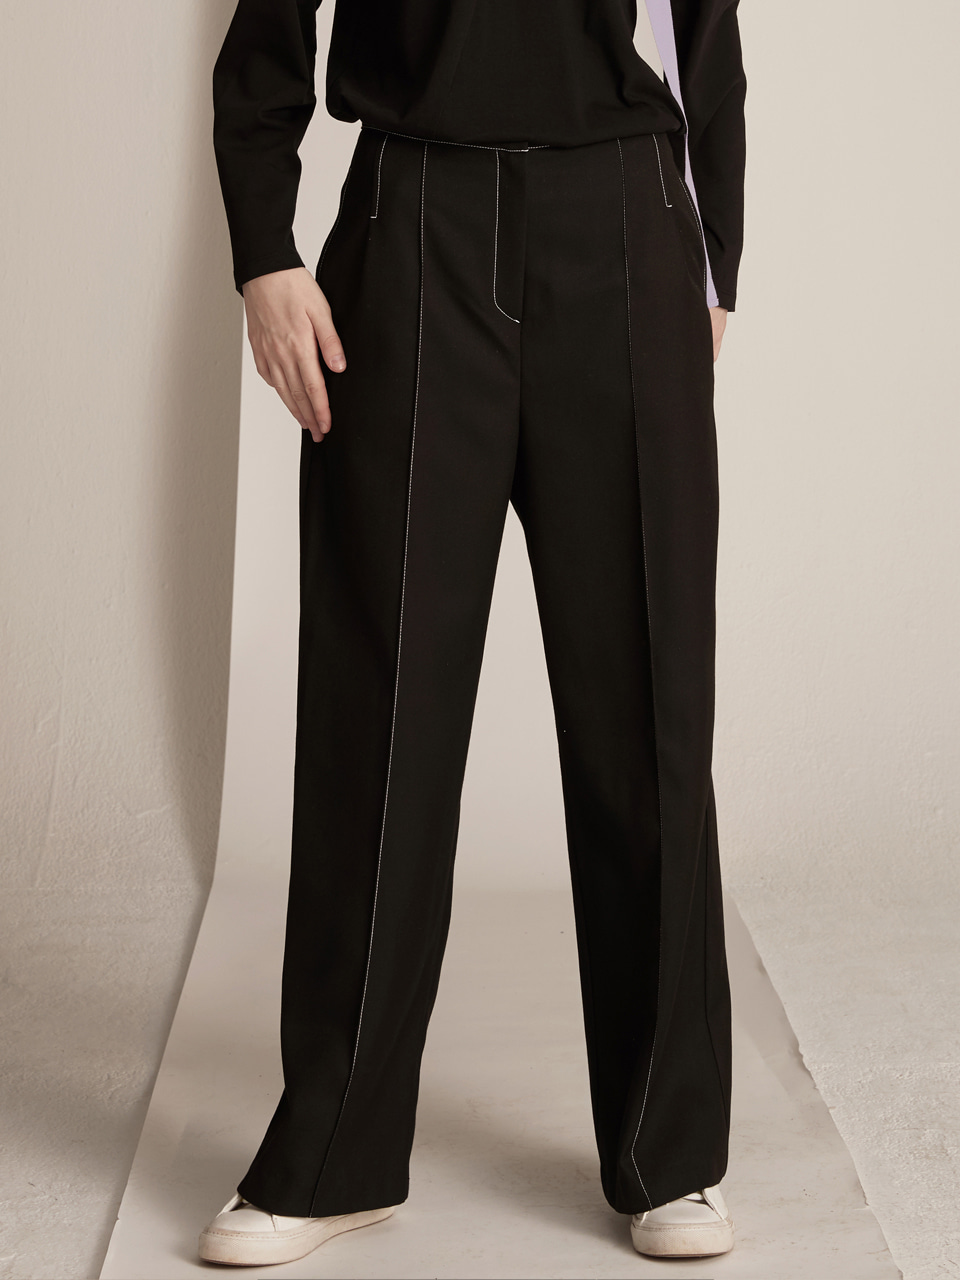 Pin-tuck Stitched Pants - Black